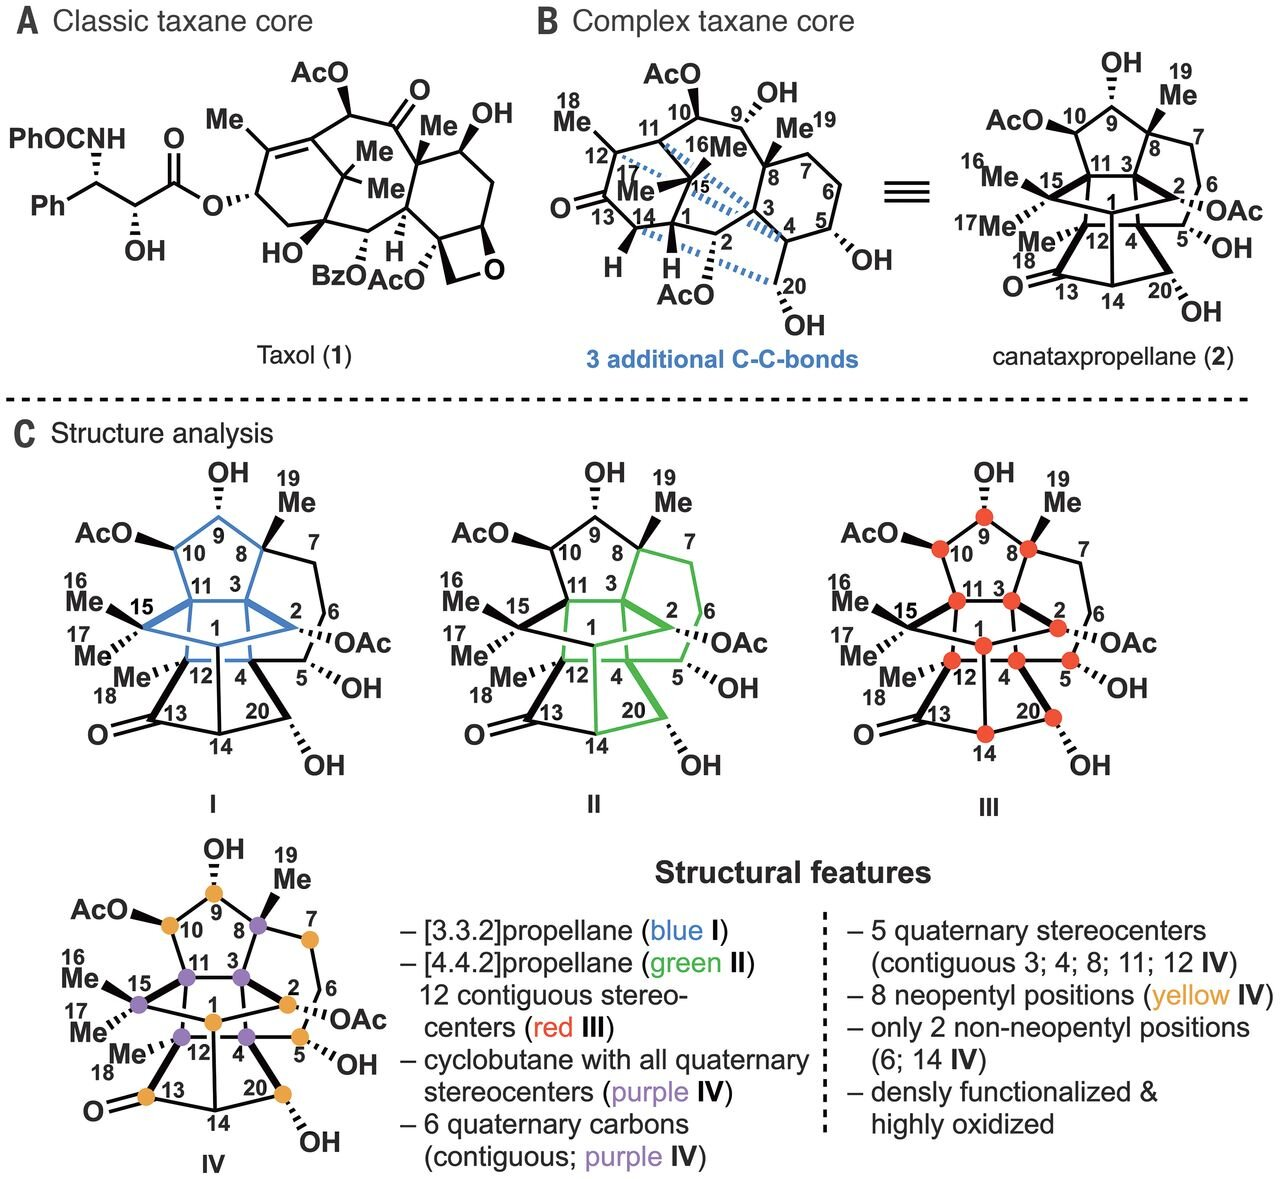 Synthetic canataxpropellane at last: Reproducing one of nature's most complex products